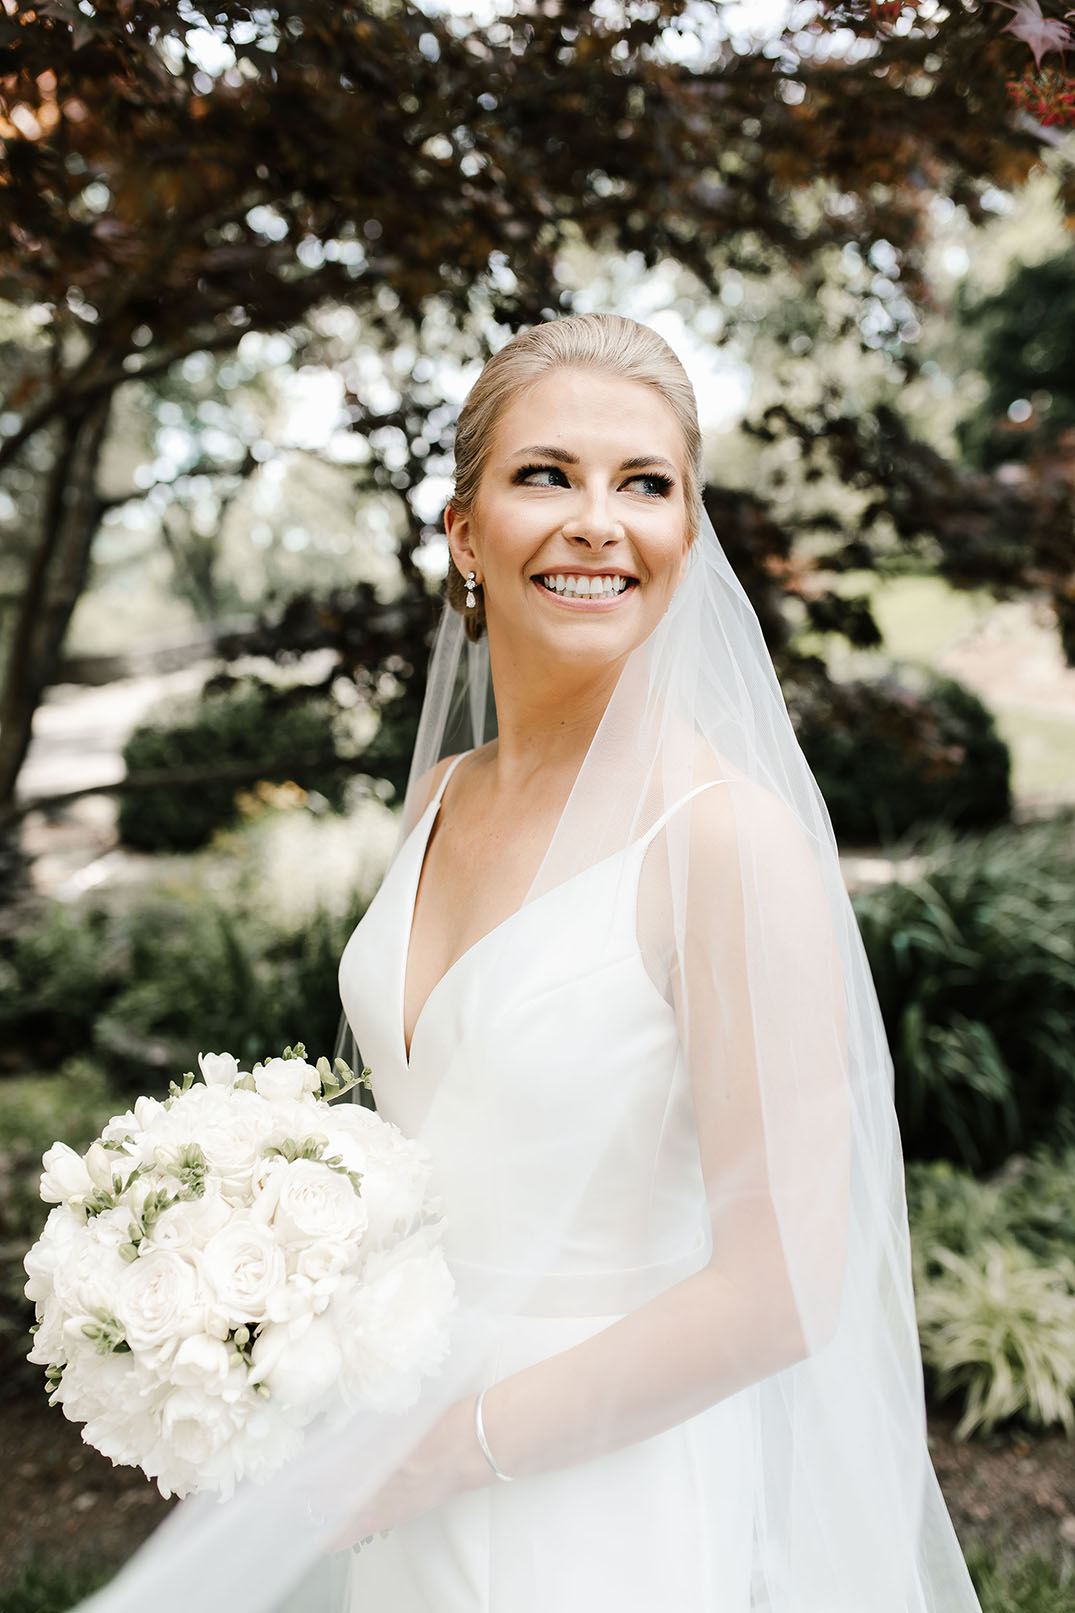 Emily Holding Bouquet